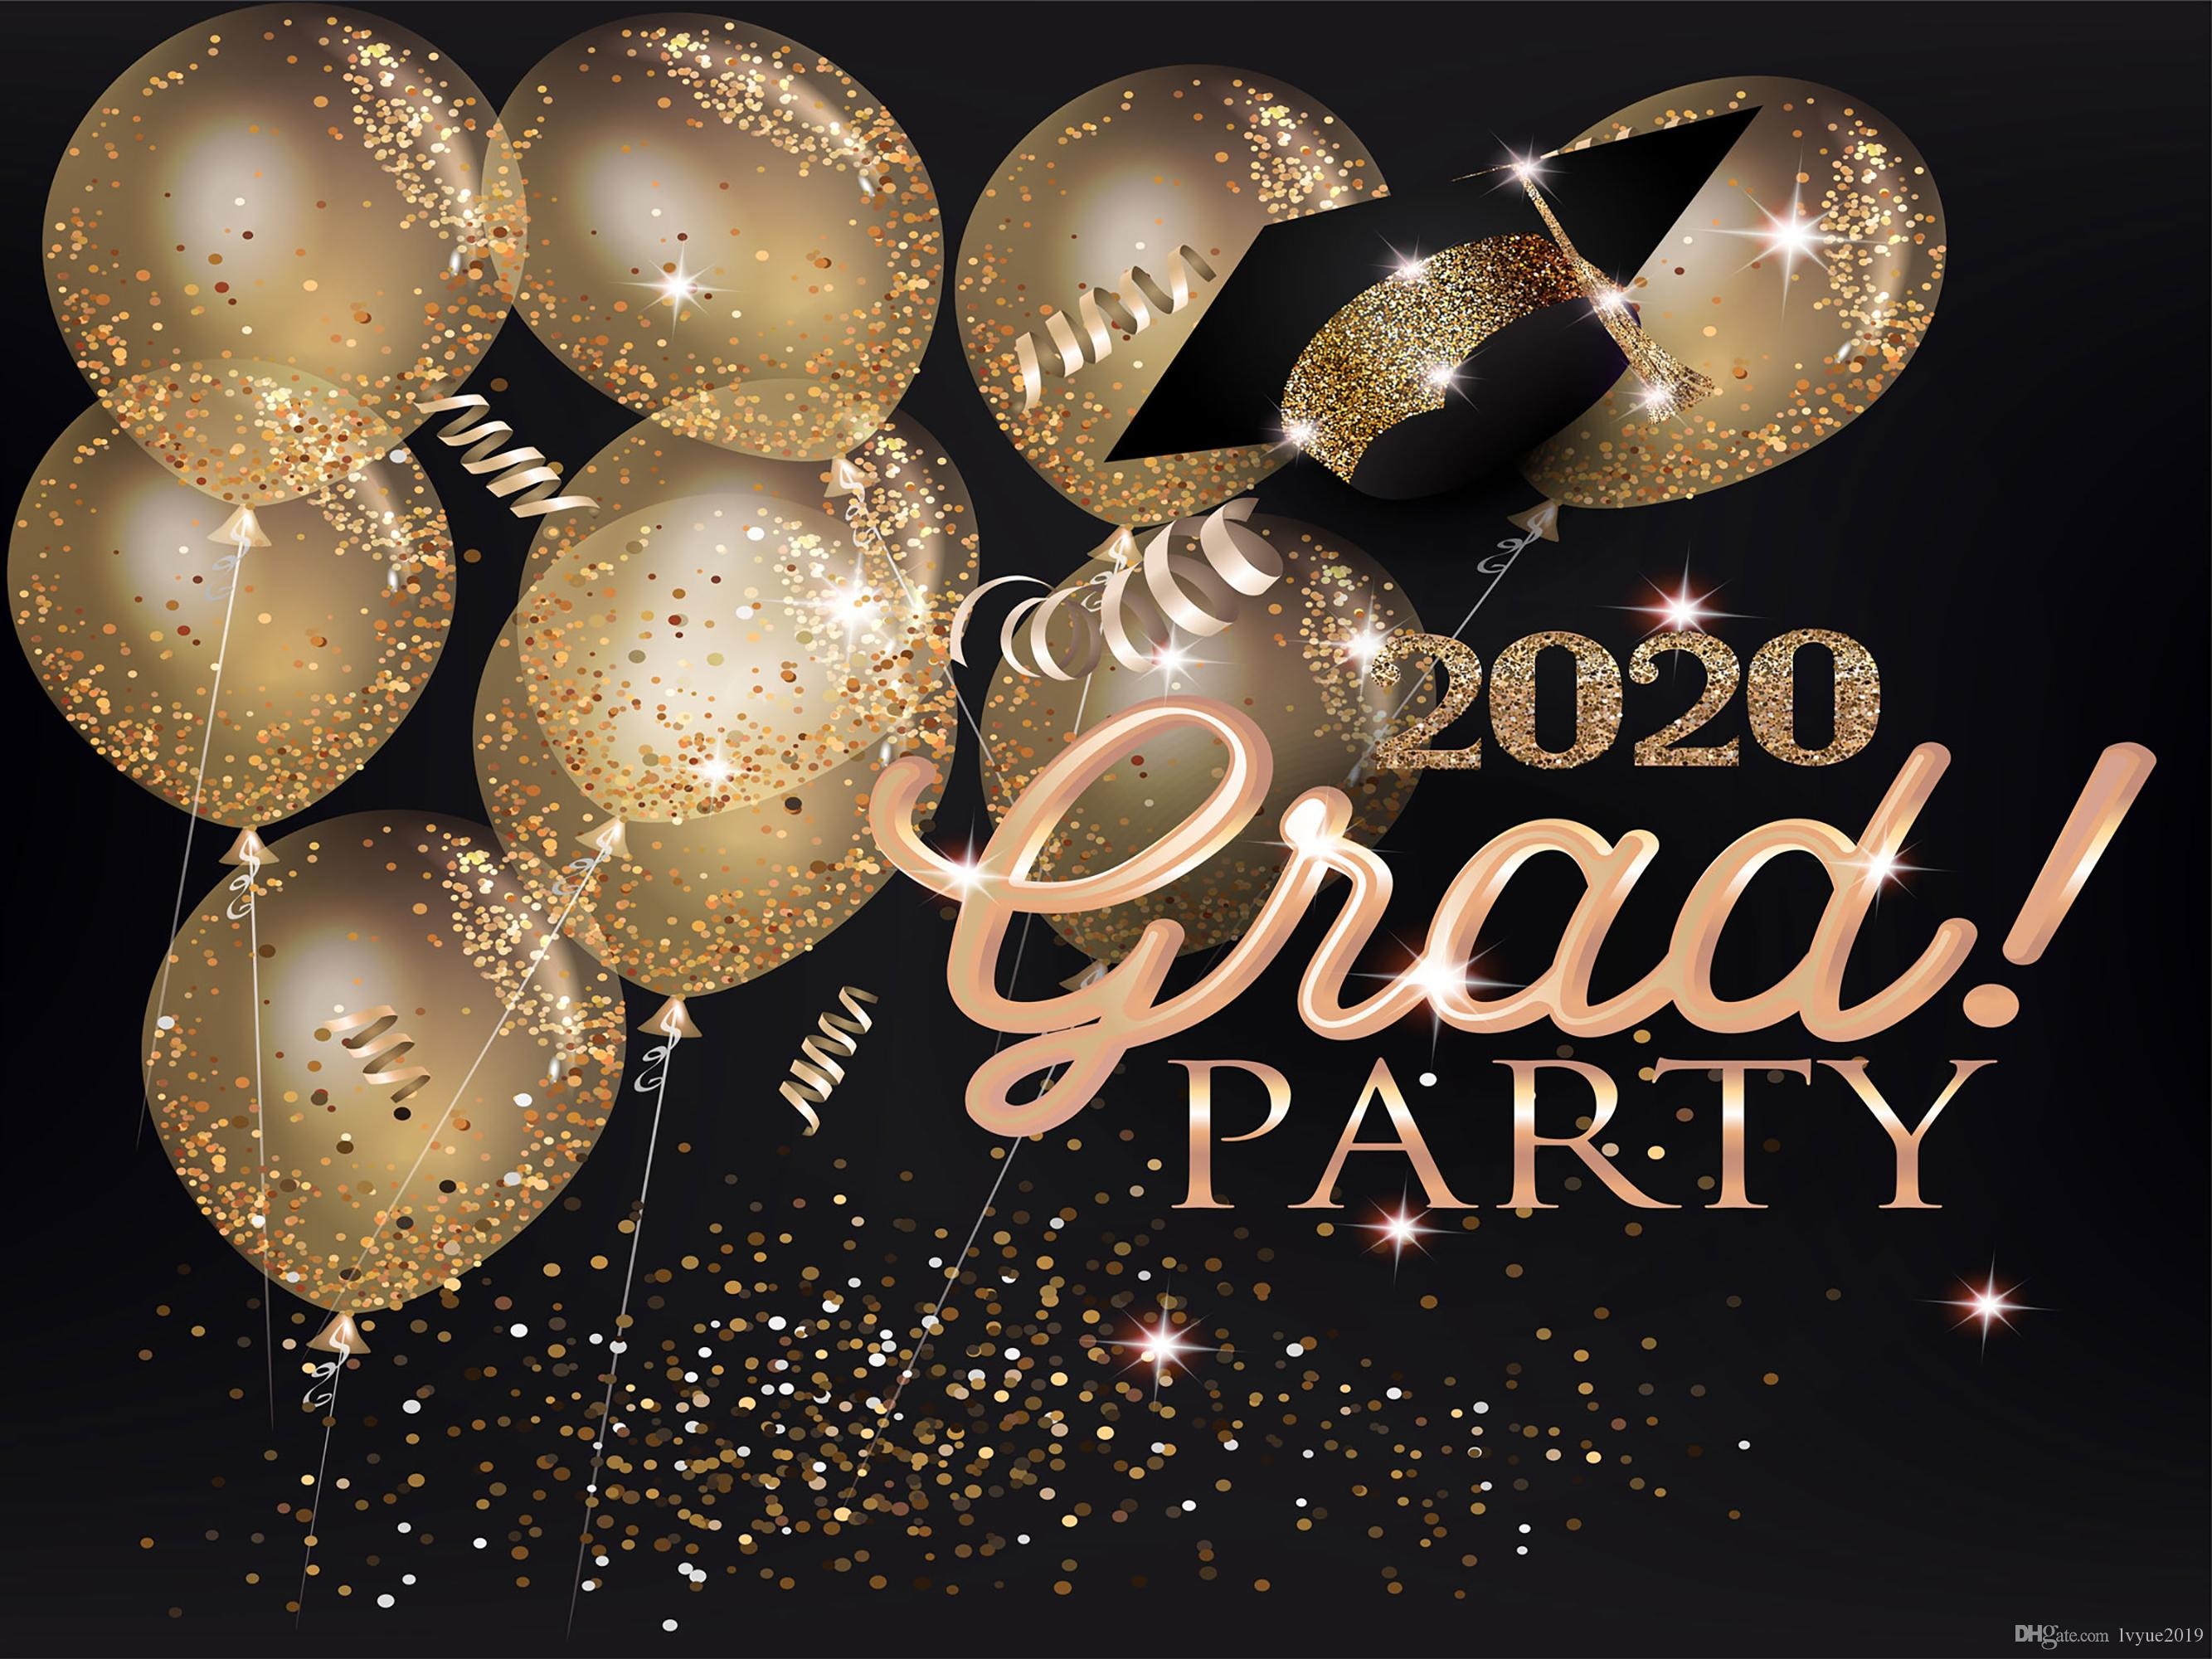 Graduation Party 2020.2019 2020 Graduation Party Banner Vinyl Photography Backdrops Hats Ribbon Gold Air Balloons Black Photo Booth Backgrounds For Students Studio Pr From